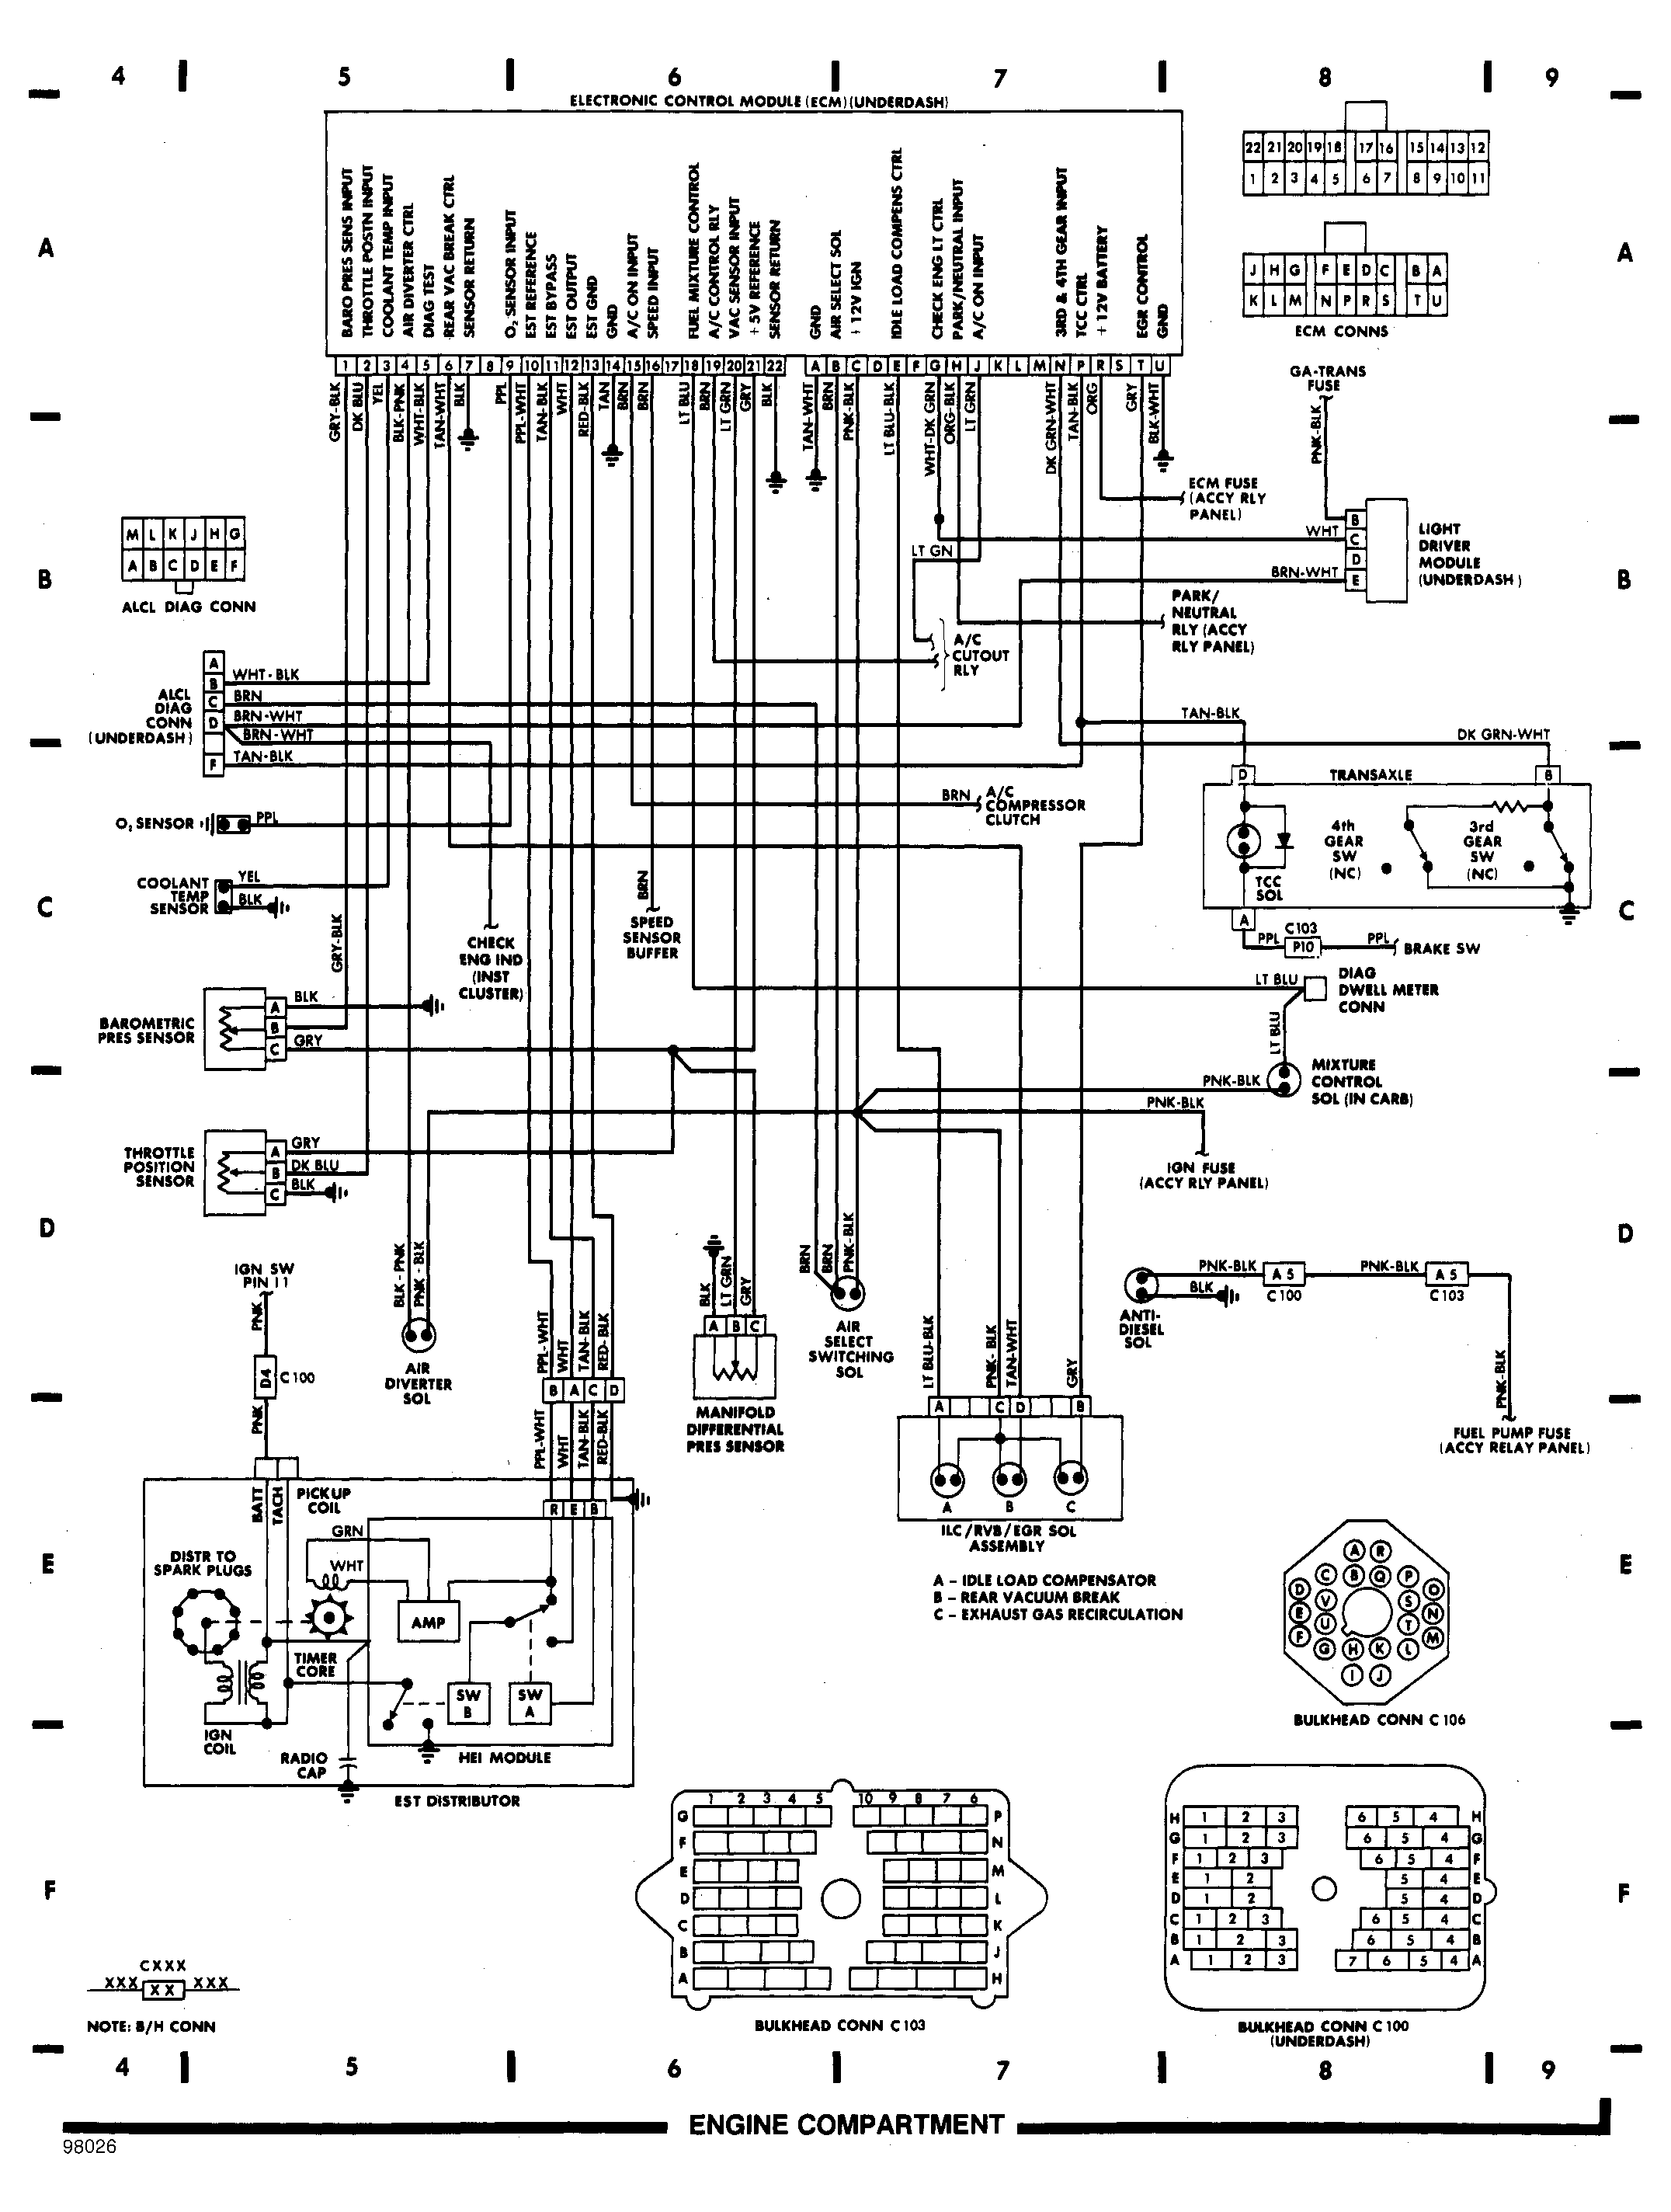 [ZHKZ_3066]  DIAGRAM] 1988 Cadillac Brougham Fuse Box Diagram FULL Version HD Quality Box  Diagram - WIRINGCONNECTORS.LEXANESIRAC.FR | Fuse Box 1988 Cadillac Brougham |  | wiringconnectors.lexanesirac.fr